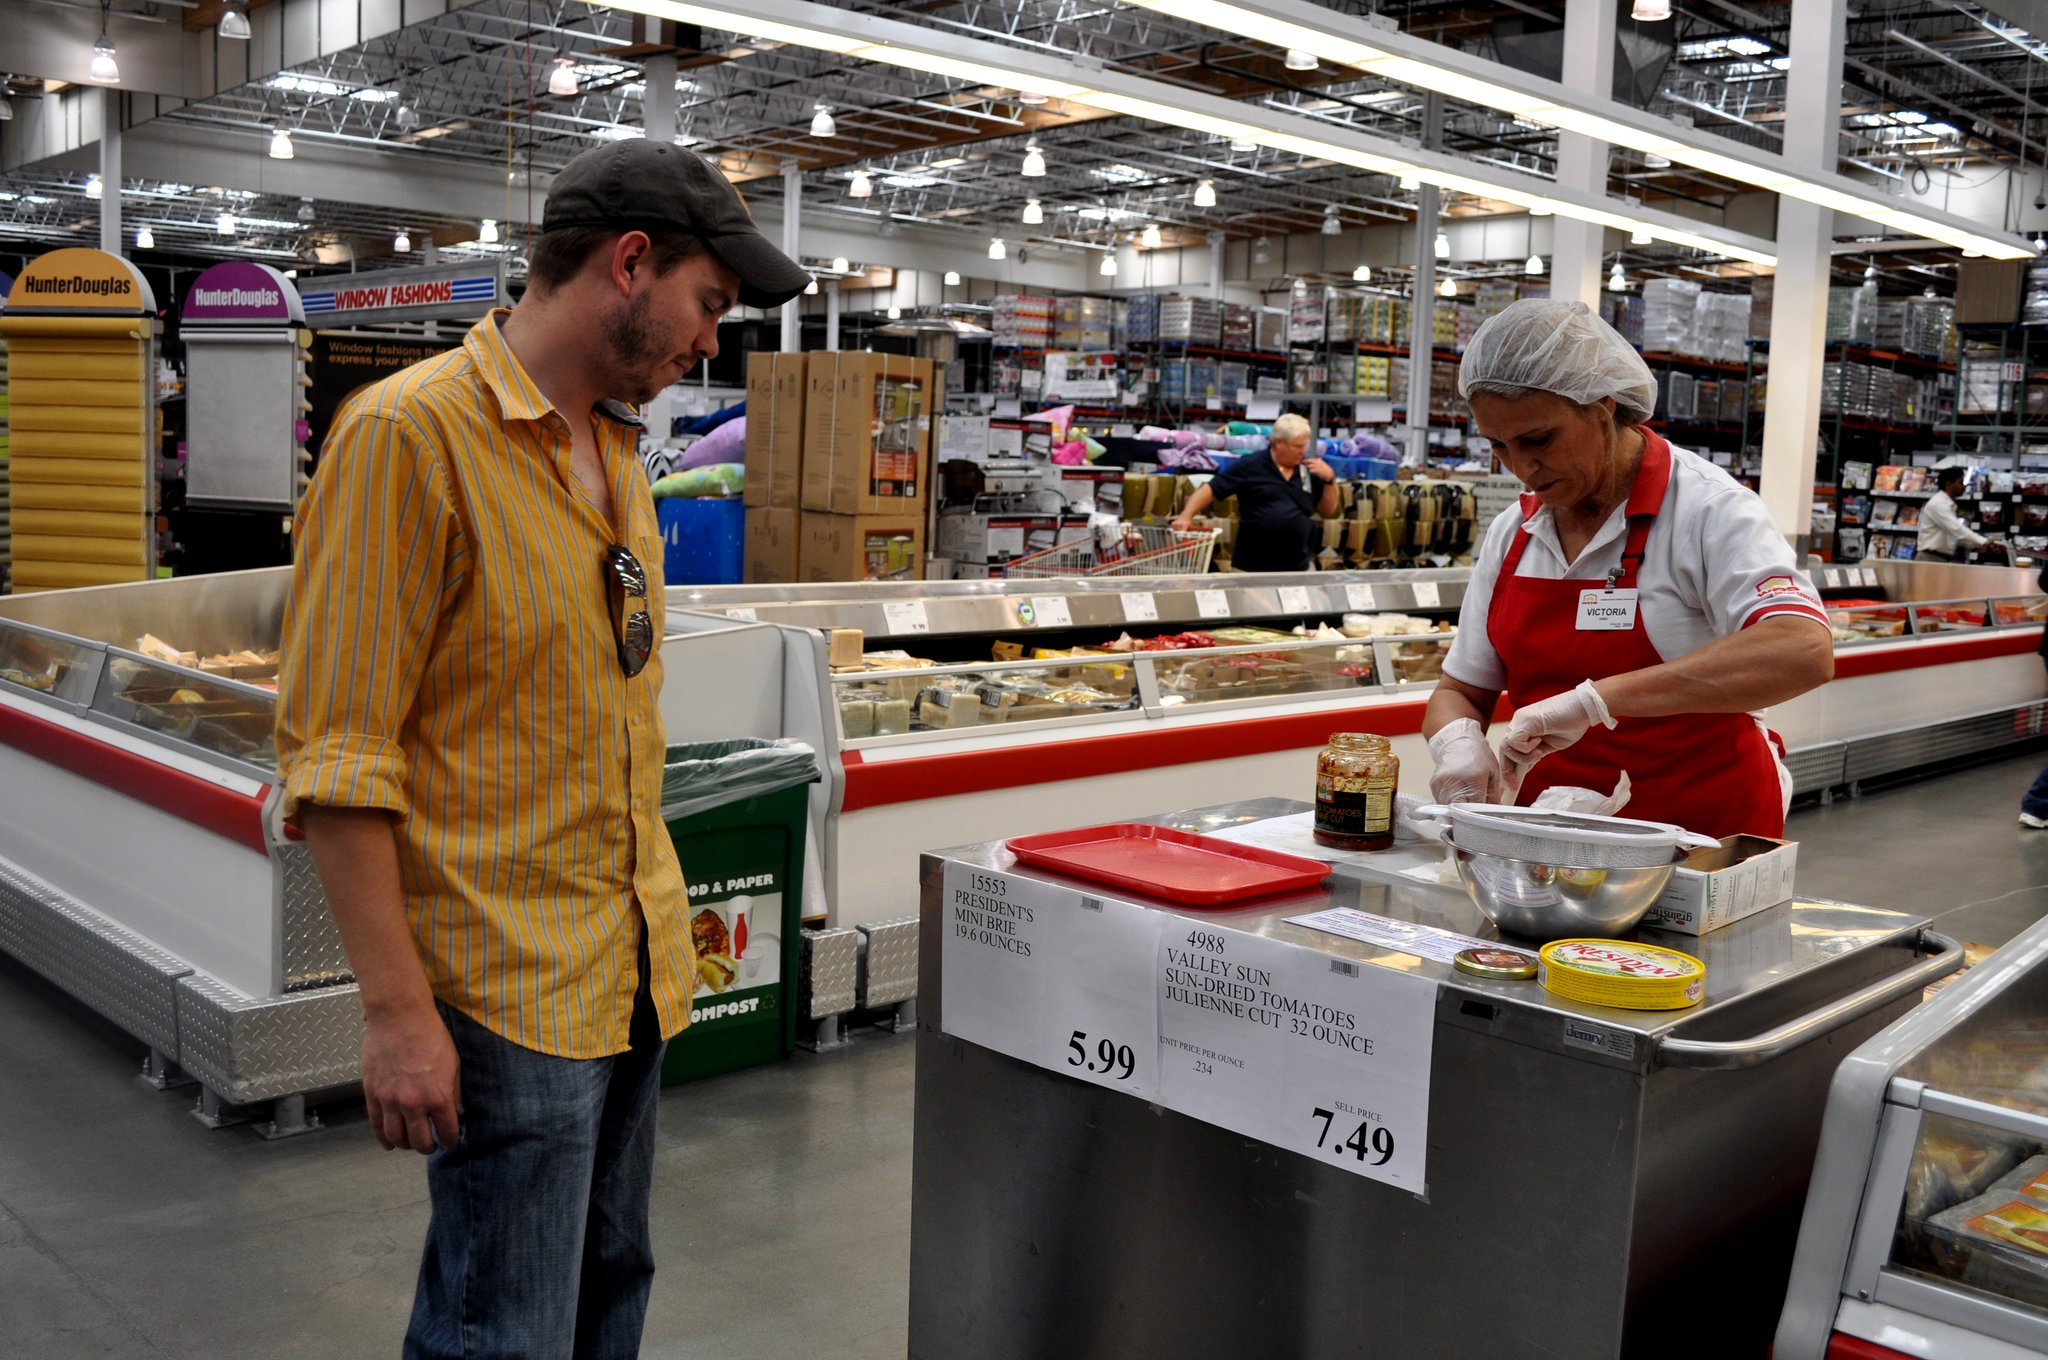 71-Year-Old Canadian Costco Worker Regains Right to Sit at Work